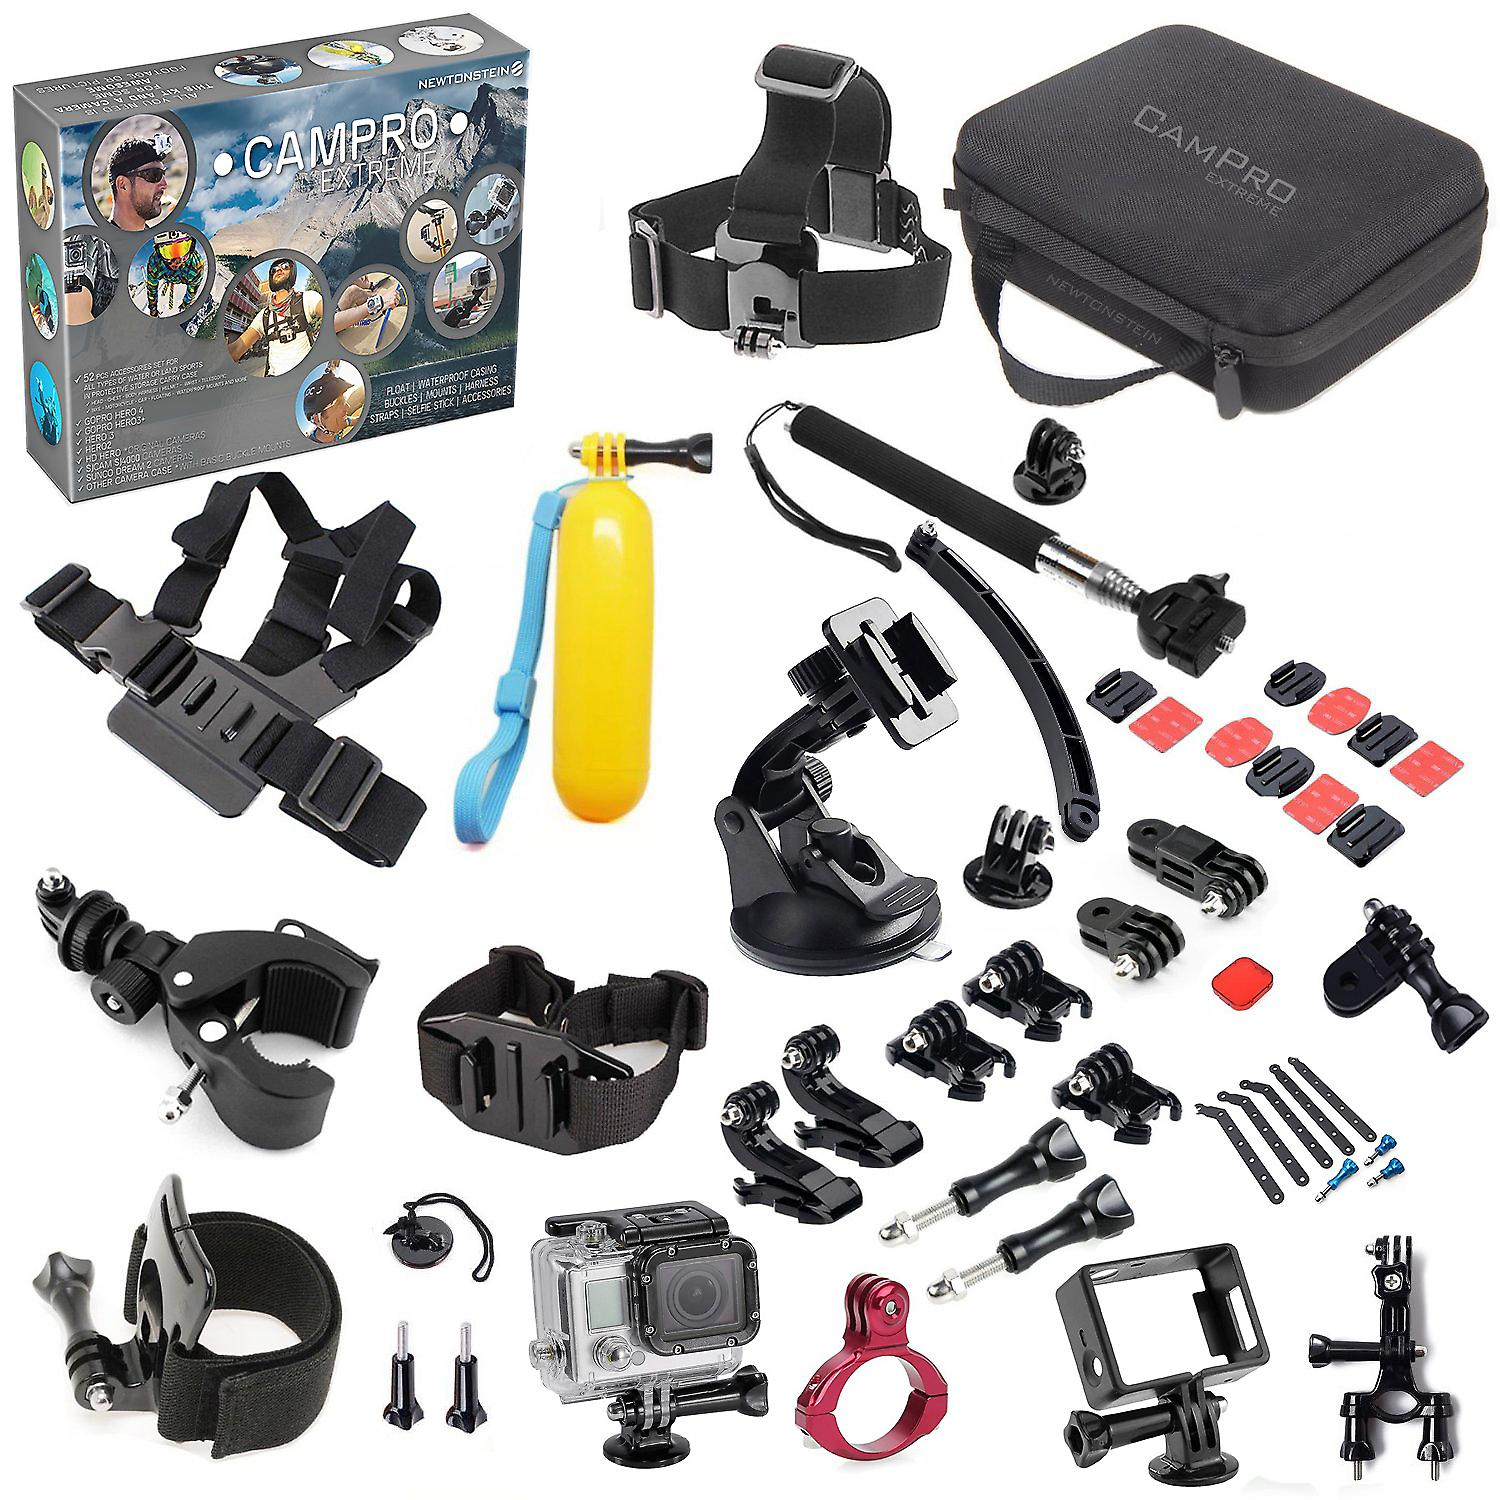 CamPro Extreme - Complete Sports 52pcs Camera Accessories Bundle 23 in 1 Set Kit For Official Gopro Go Pro Hero 1 2 3 3+ 4 SJCAM SJ4000 Sunco DREAM 2 Sports Cameras and Many More. Comes with Head Chest Body Harness; Helmet Wrist Telescopic Bike Motorcycle Car Floating Waterproof Mounts; Image Colour Filters and More for All Types of Water or Land Sports in Storage Carry Case